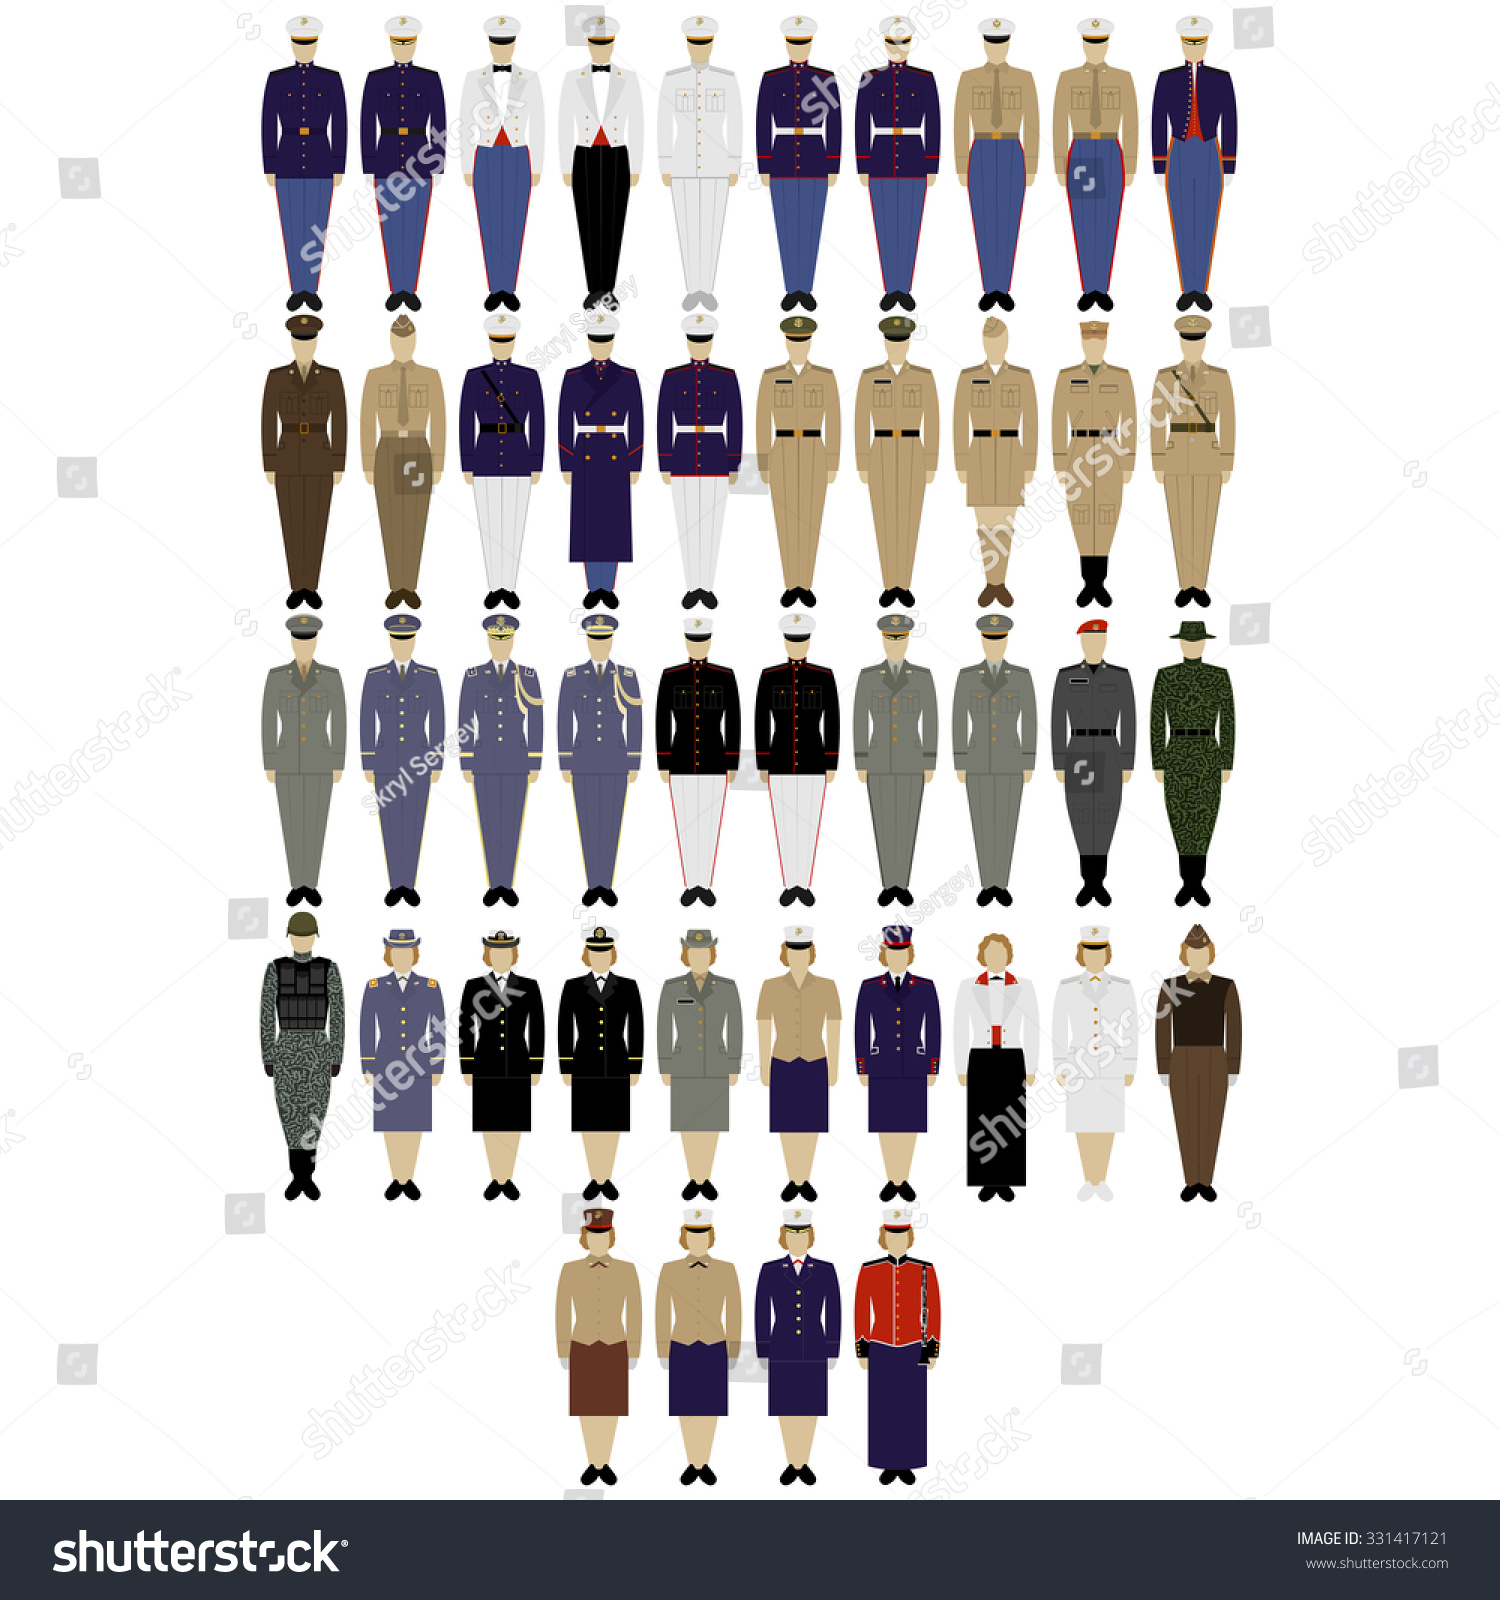 Dating a US military uniform Archive - Gunboard s Forums